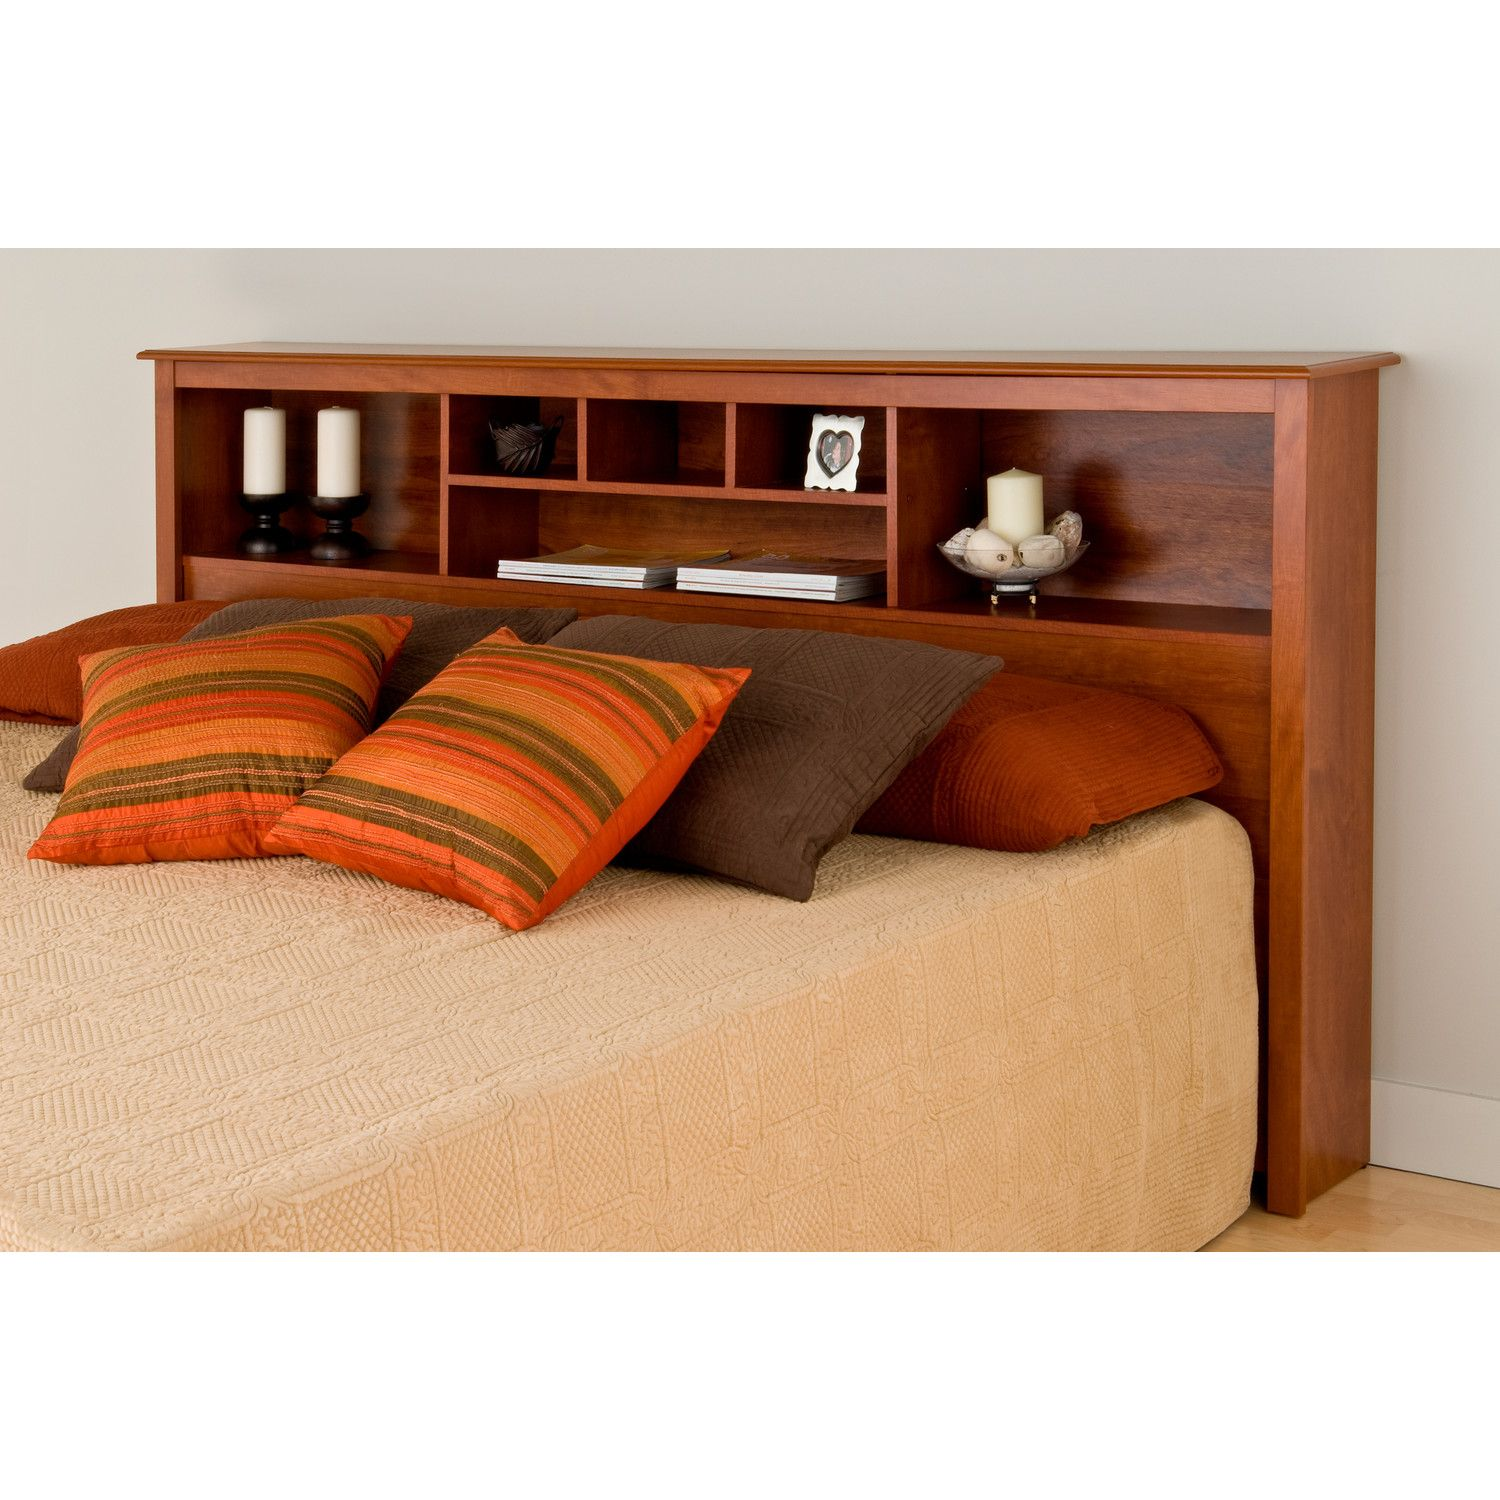 Bookshelf Headboard Full Daybed Bed Designs